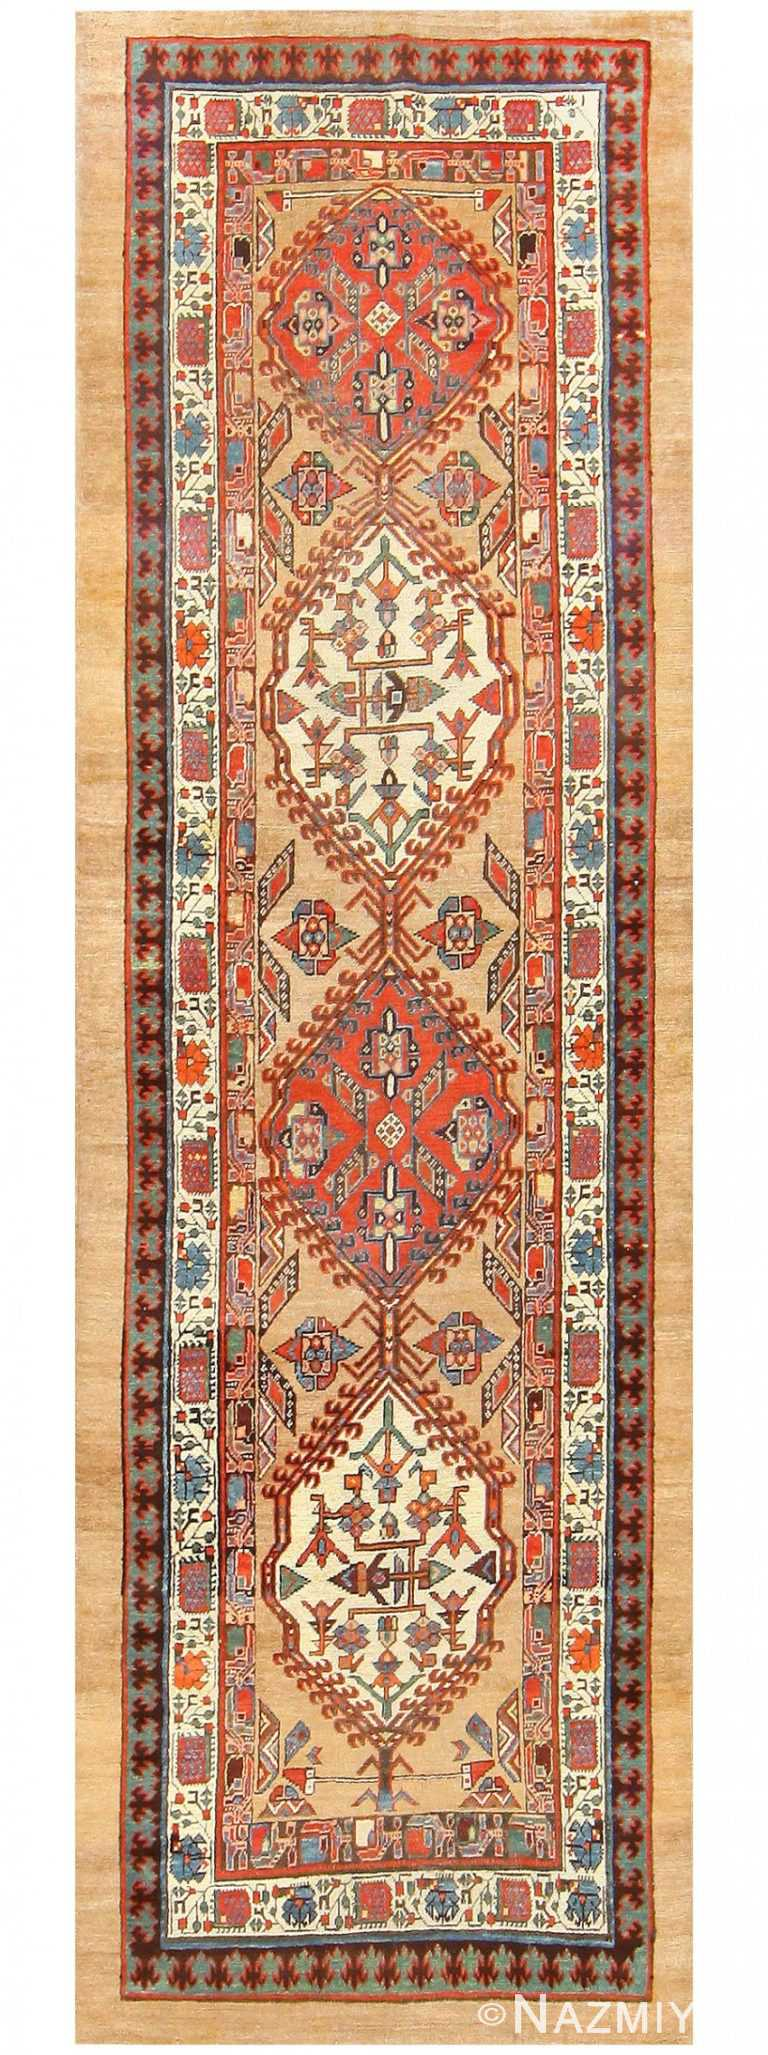 Antique Persian Serab Runner 48242 Detail/Large View